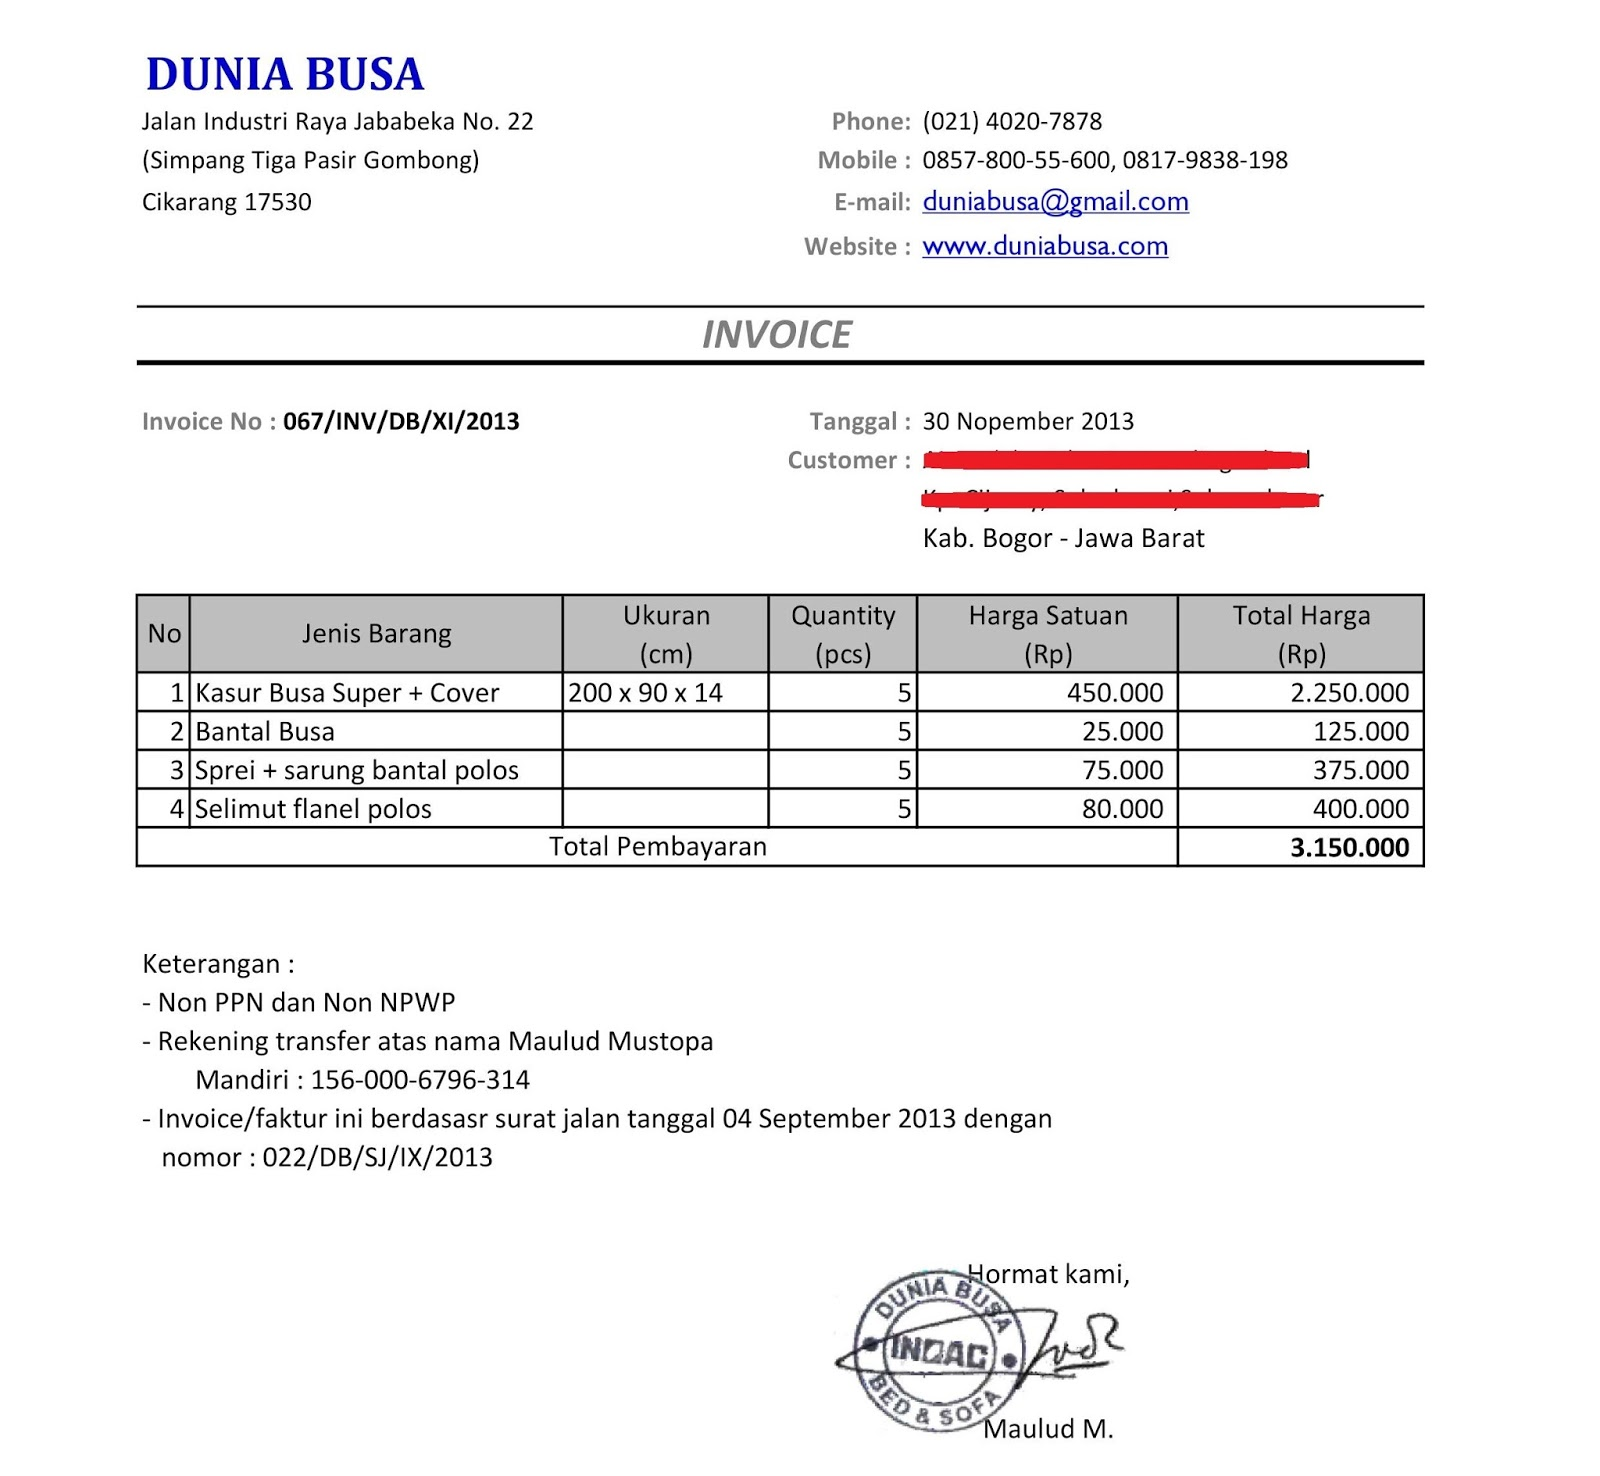 Barneybonesus  Unique Free Invoice Online  Create Invoice Online  Invoice Template  With Inspiring Contoh Format Invoice Atau Surat Tagihan  Brankas Arsip  Free Invoice Online With Cool Coleslaw Receipt Also Apartment Rental Receipt Template In Addition Sample Of Receipt Template And Format Of Receipt Book As Well As Us Taxi Receipt Additionally Sold Car Receipt From Sklepco With Barneybonesus  Inspiring Free Invoice Online  Create Invoice Online  Invoice Template  With Cool Contoh Format Invoice Atau Surat Tagihan  Brankas Arsip  Free Invoice Online And Unique Coleslaw Receipt Also Apartment Rental Receipt Template In Addition Sample Of Receipt Template From Sklepco